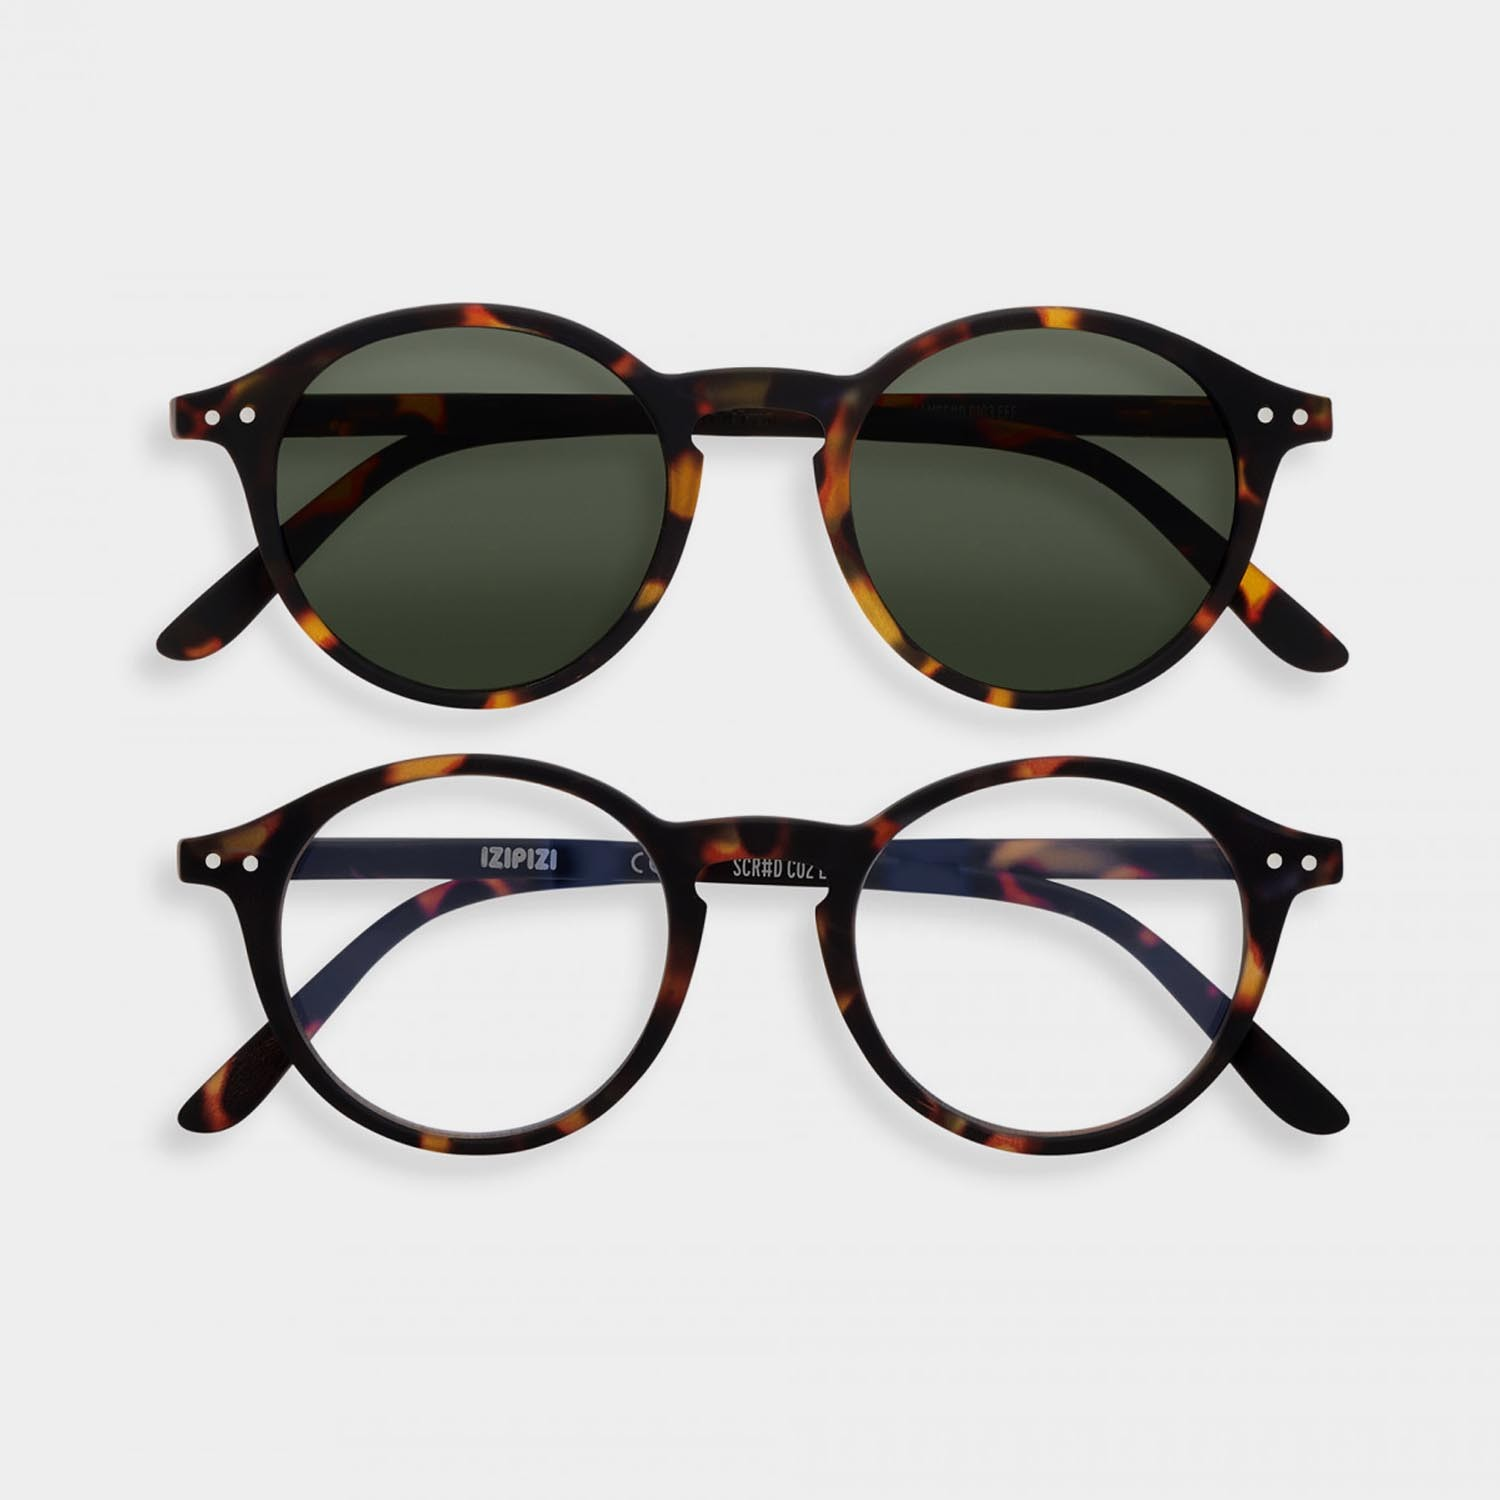 SCREEN and SUN Glasses Duo #D, Tortoise Green Lenses